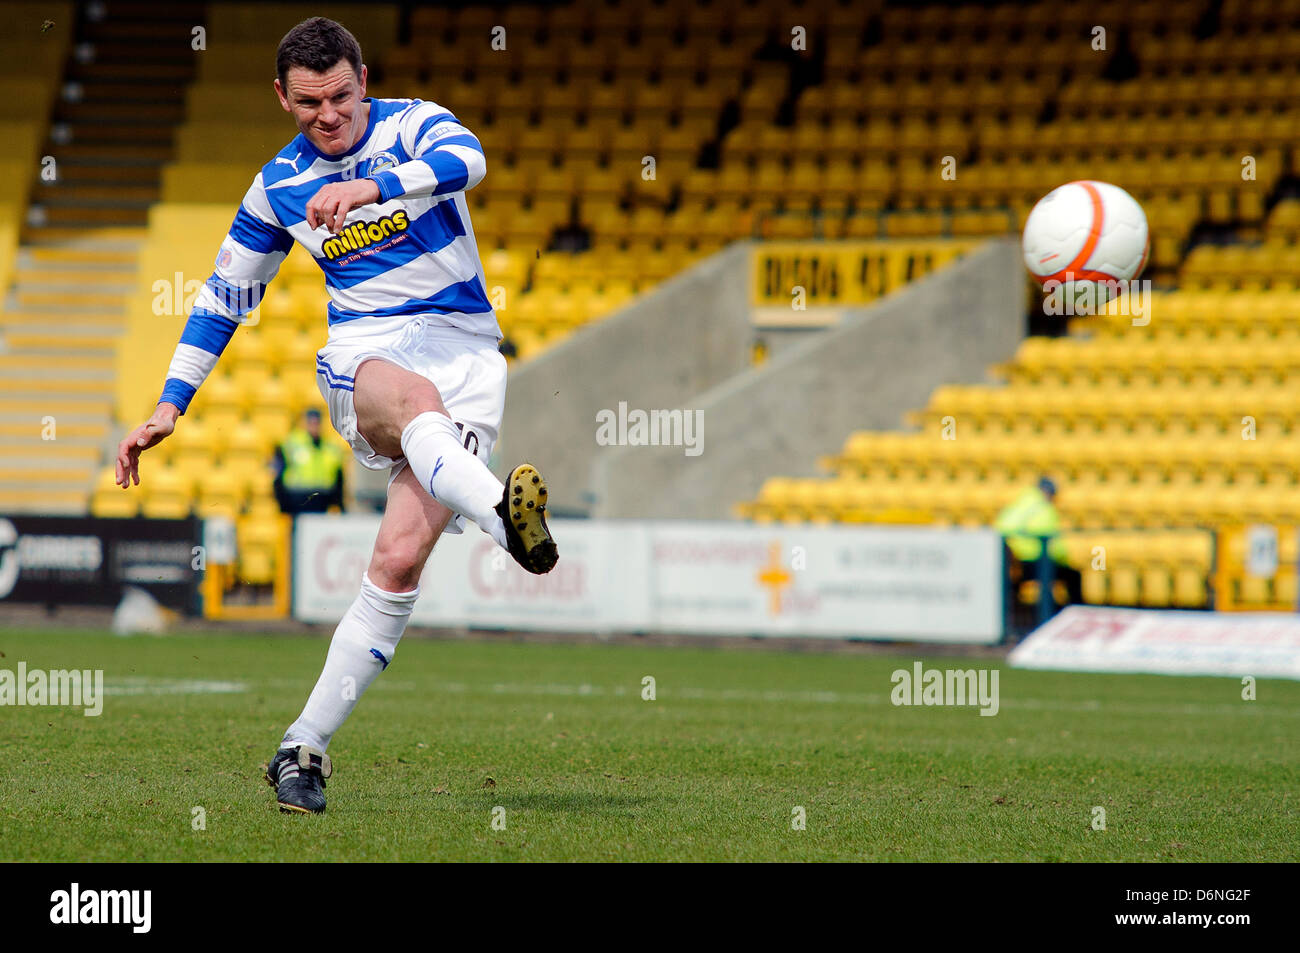 Livingston, Scotland, UK. Saturday 20th April 2013. Martin Hardie  sees his effort blocked during the Livingston - Stock Image